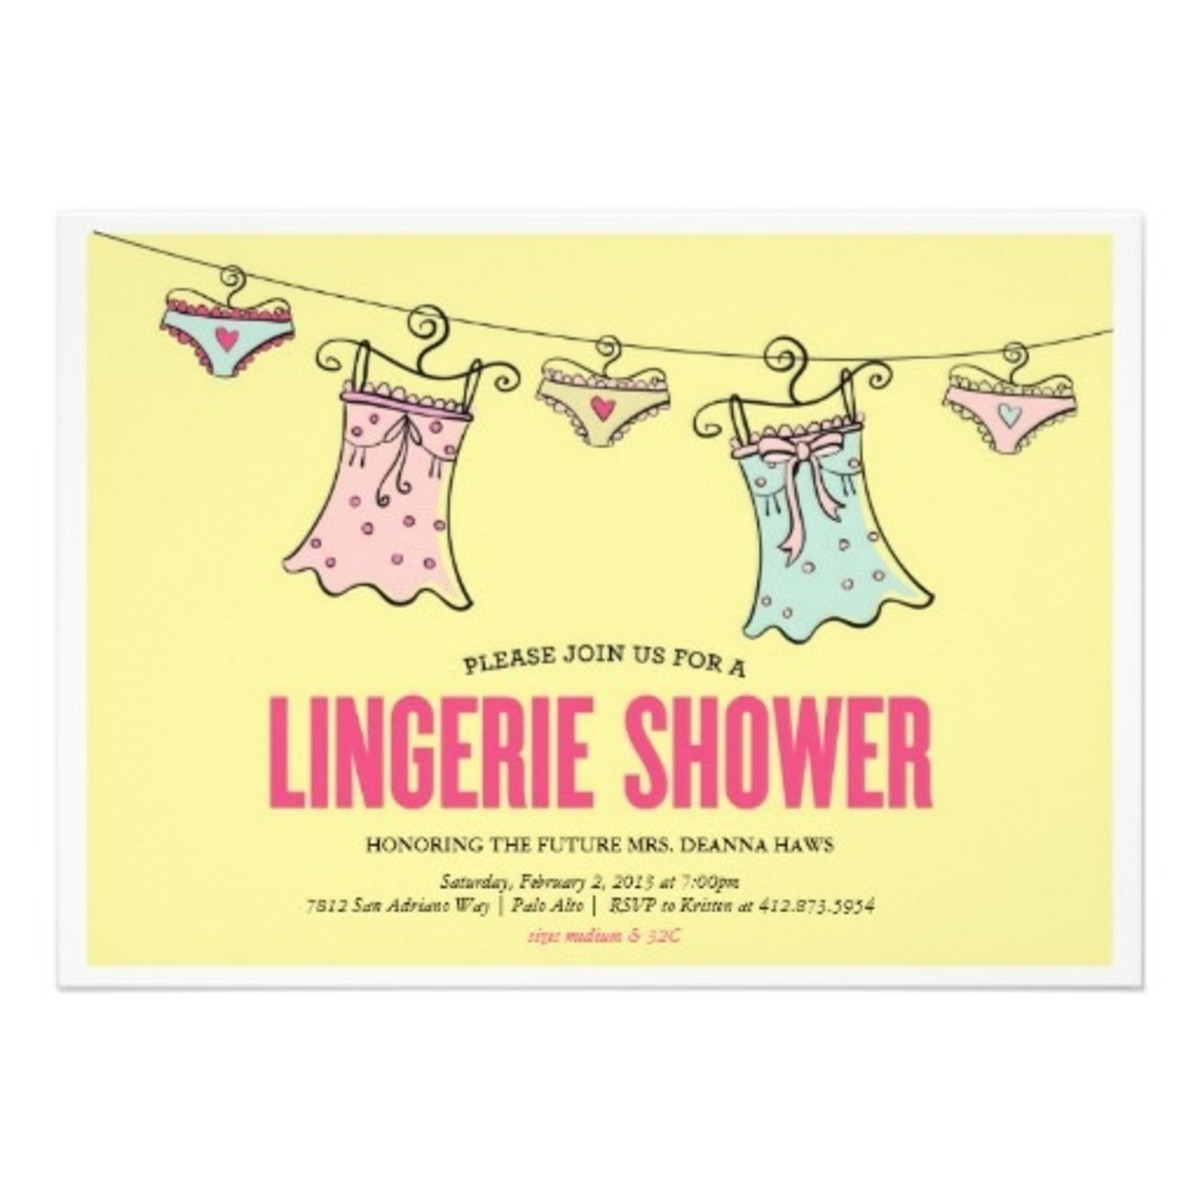 Lingerie On Line Invitation Sample